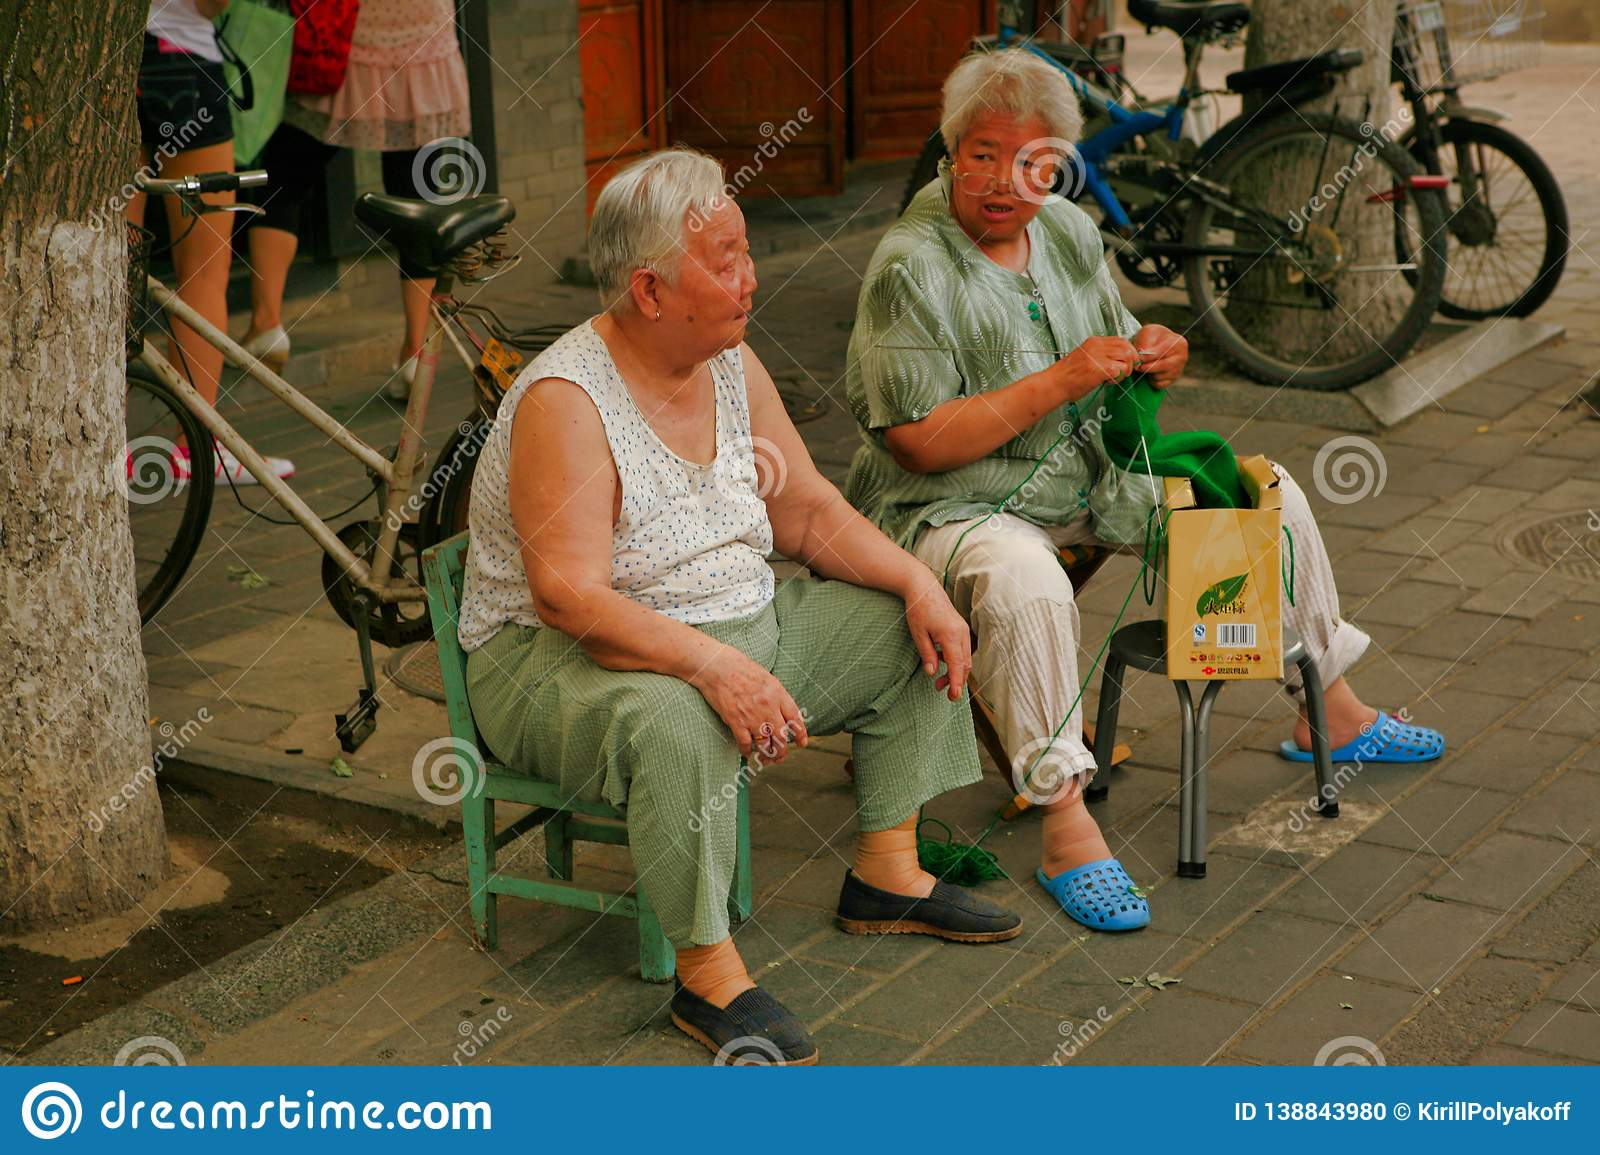 Beijing, China - June 13, 2018: Two elderly Chinese women sit in a street in Beijing and talk.